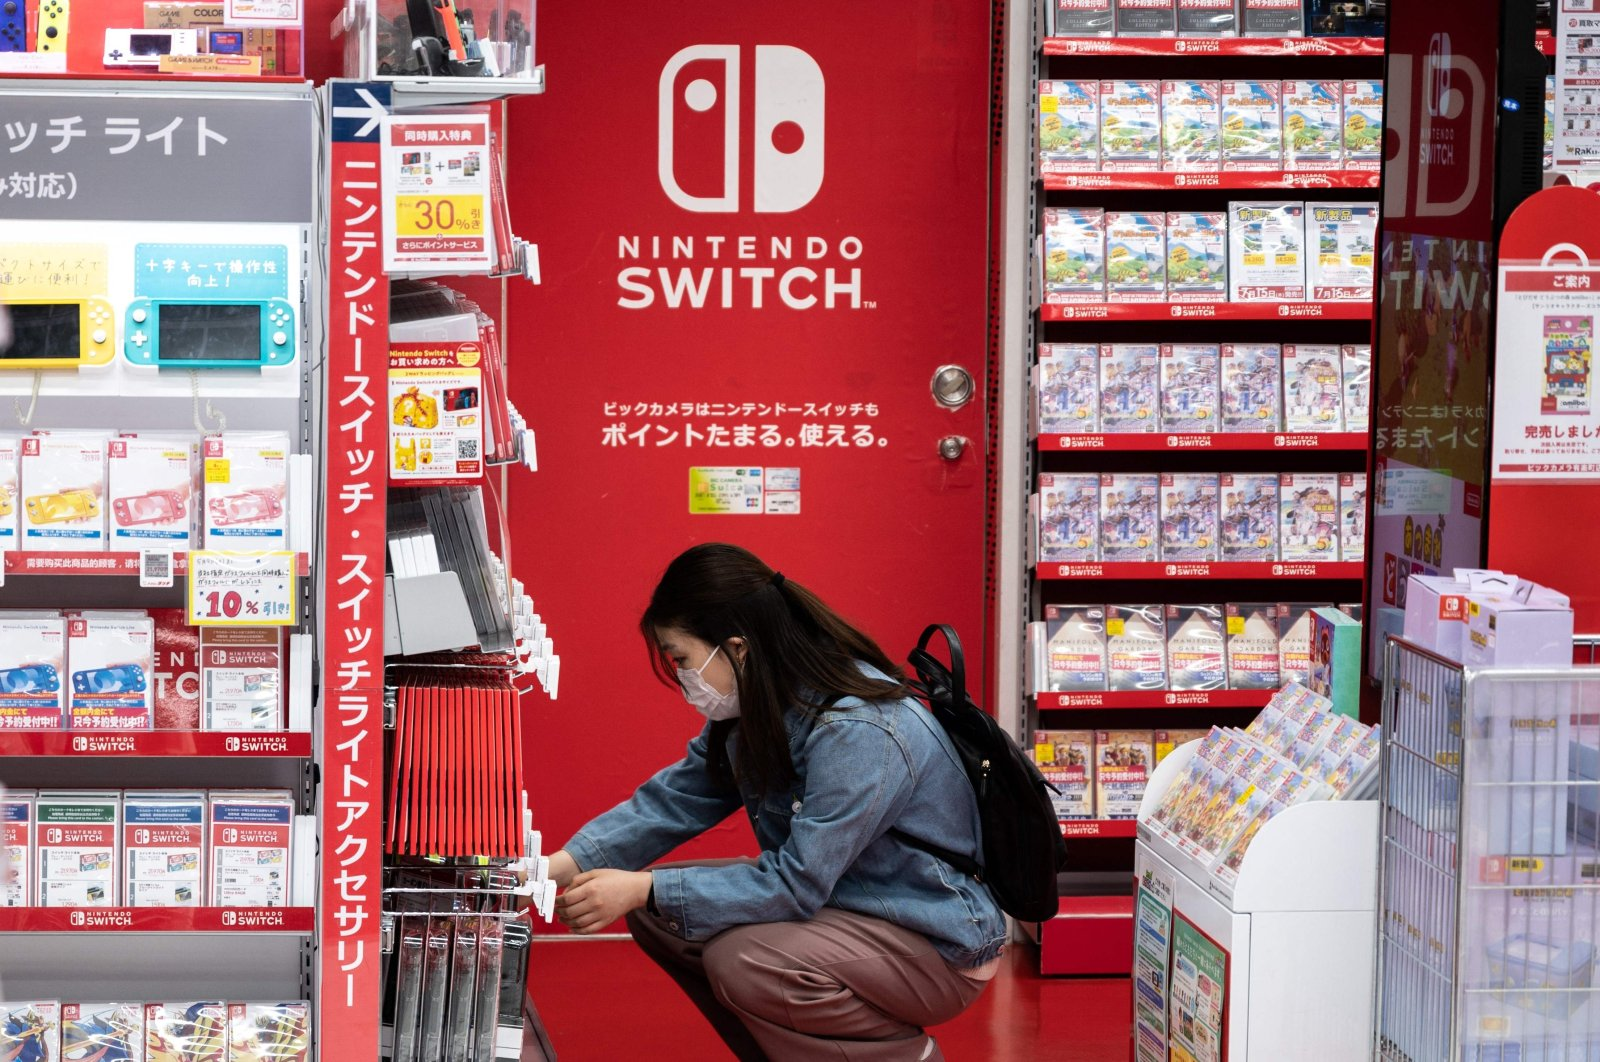 A customer browses the gaming section of Nintendo products in a shop in Tokyo, Japan, May 6, 2021. (AFP Photo)